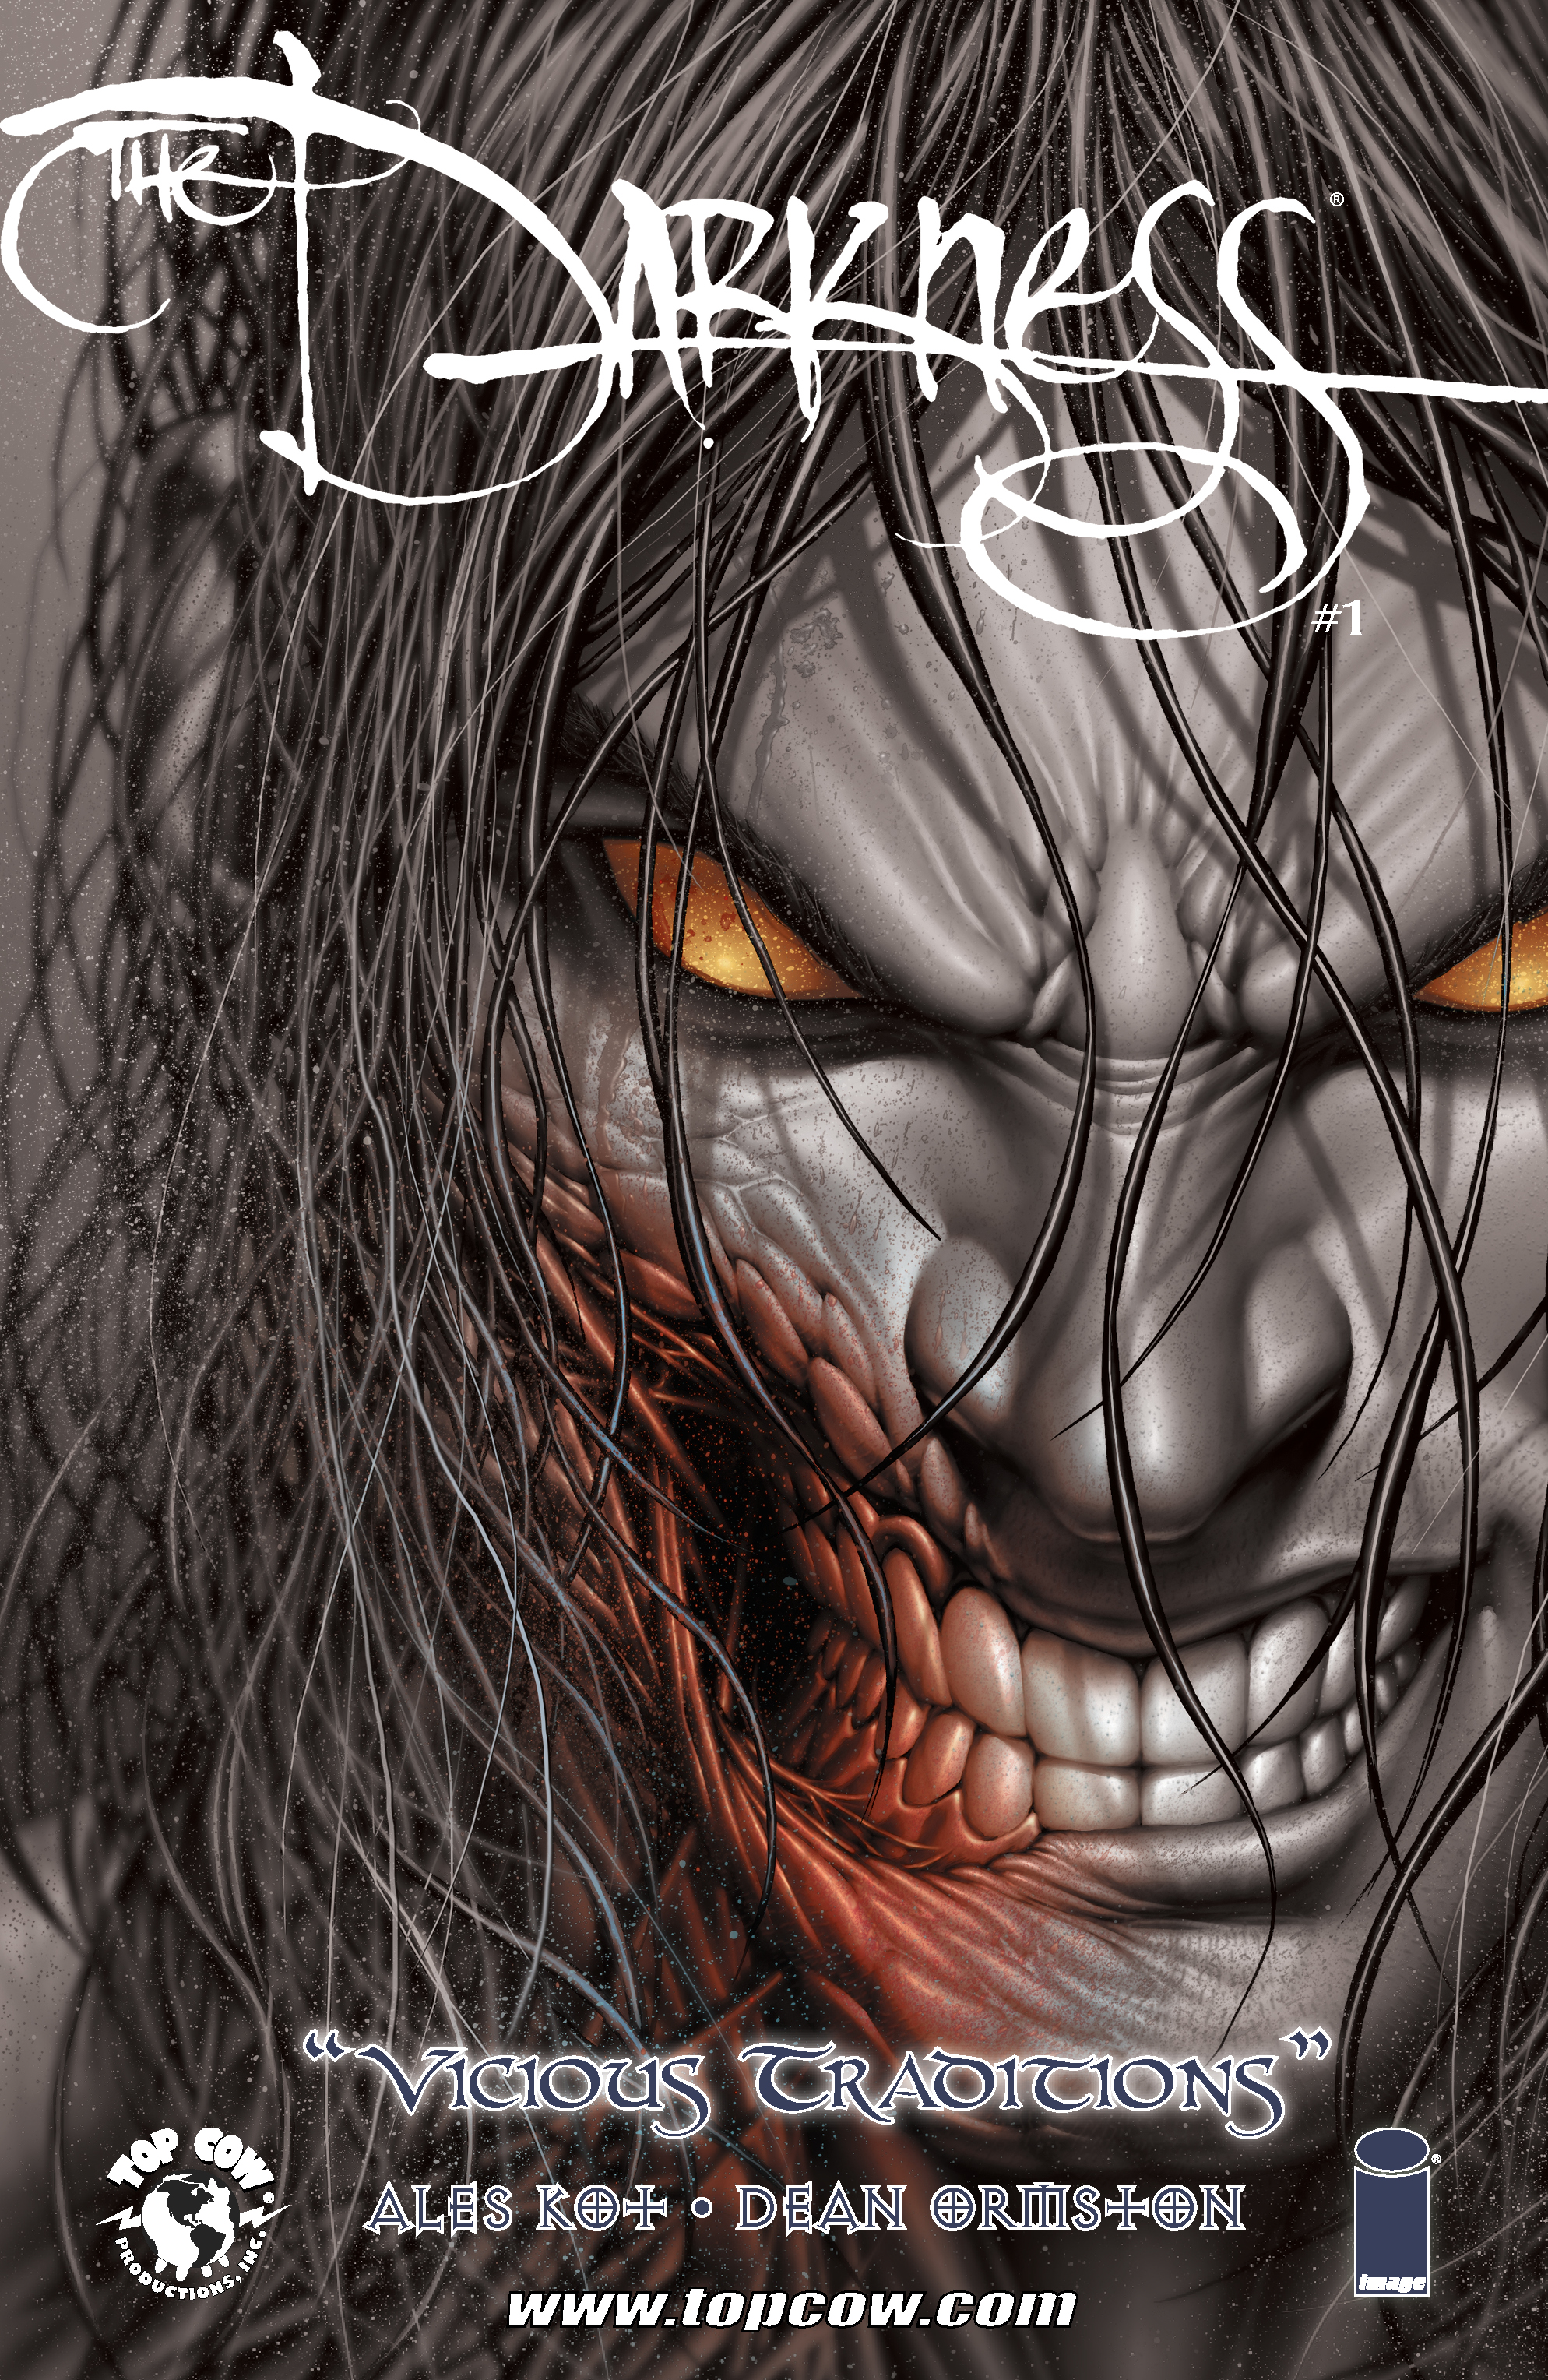 The Darkness: Vicious Traditions (One-Shot) Preview